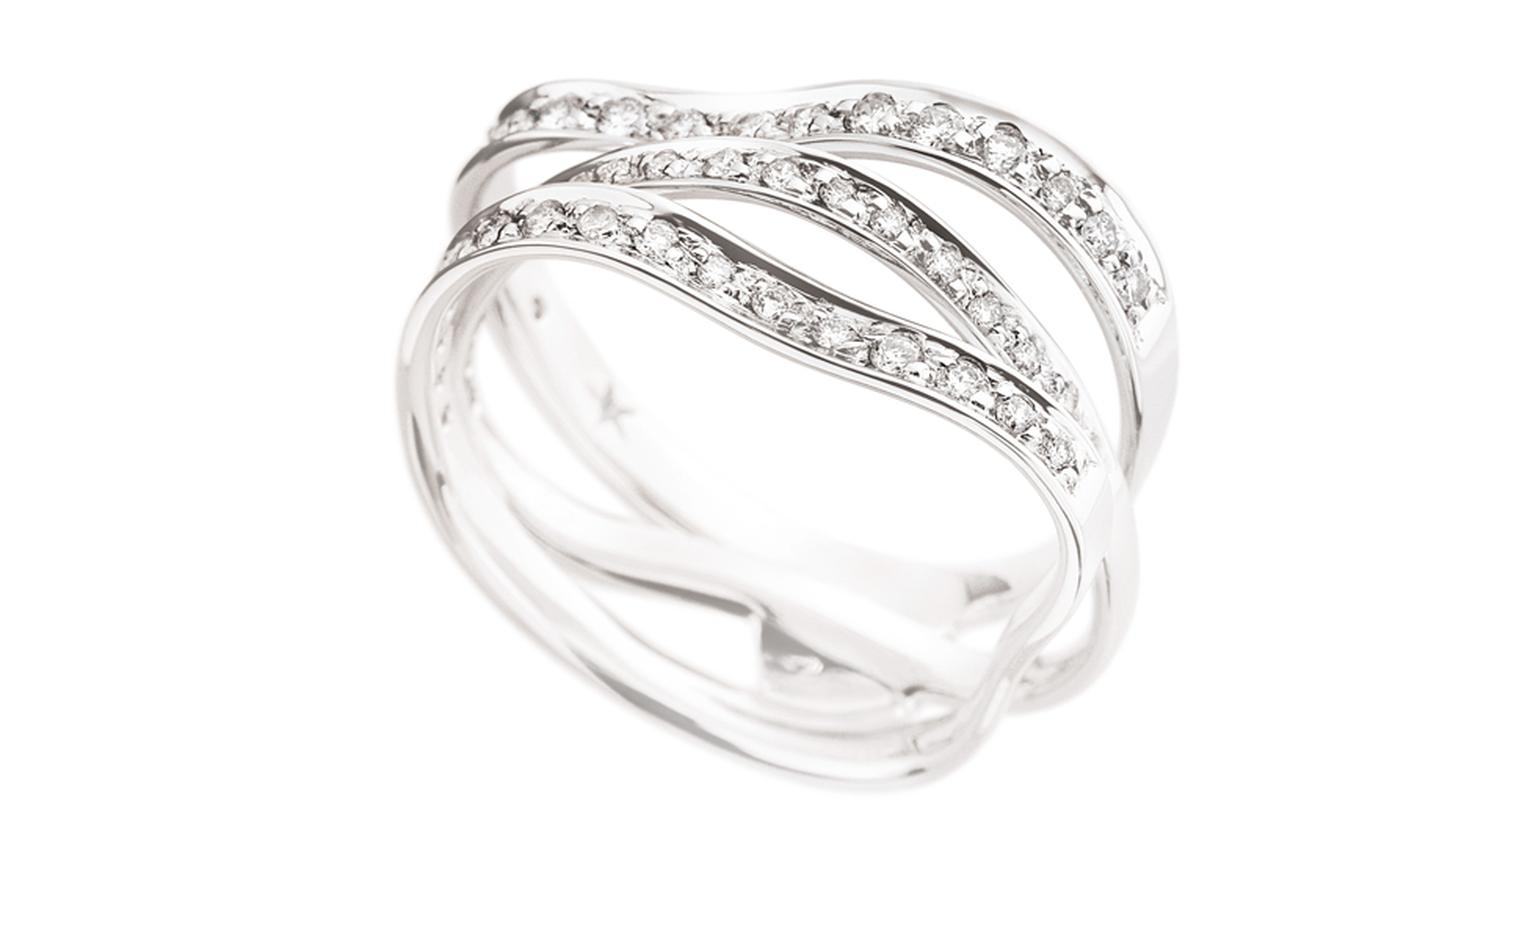 H STERN, CURVES Ring in white gold and diamonds.